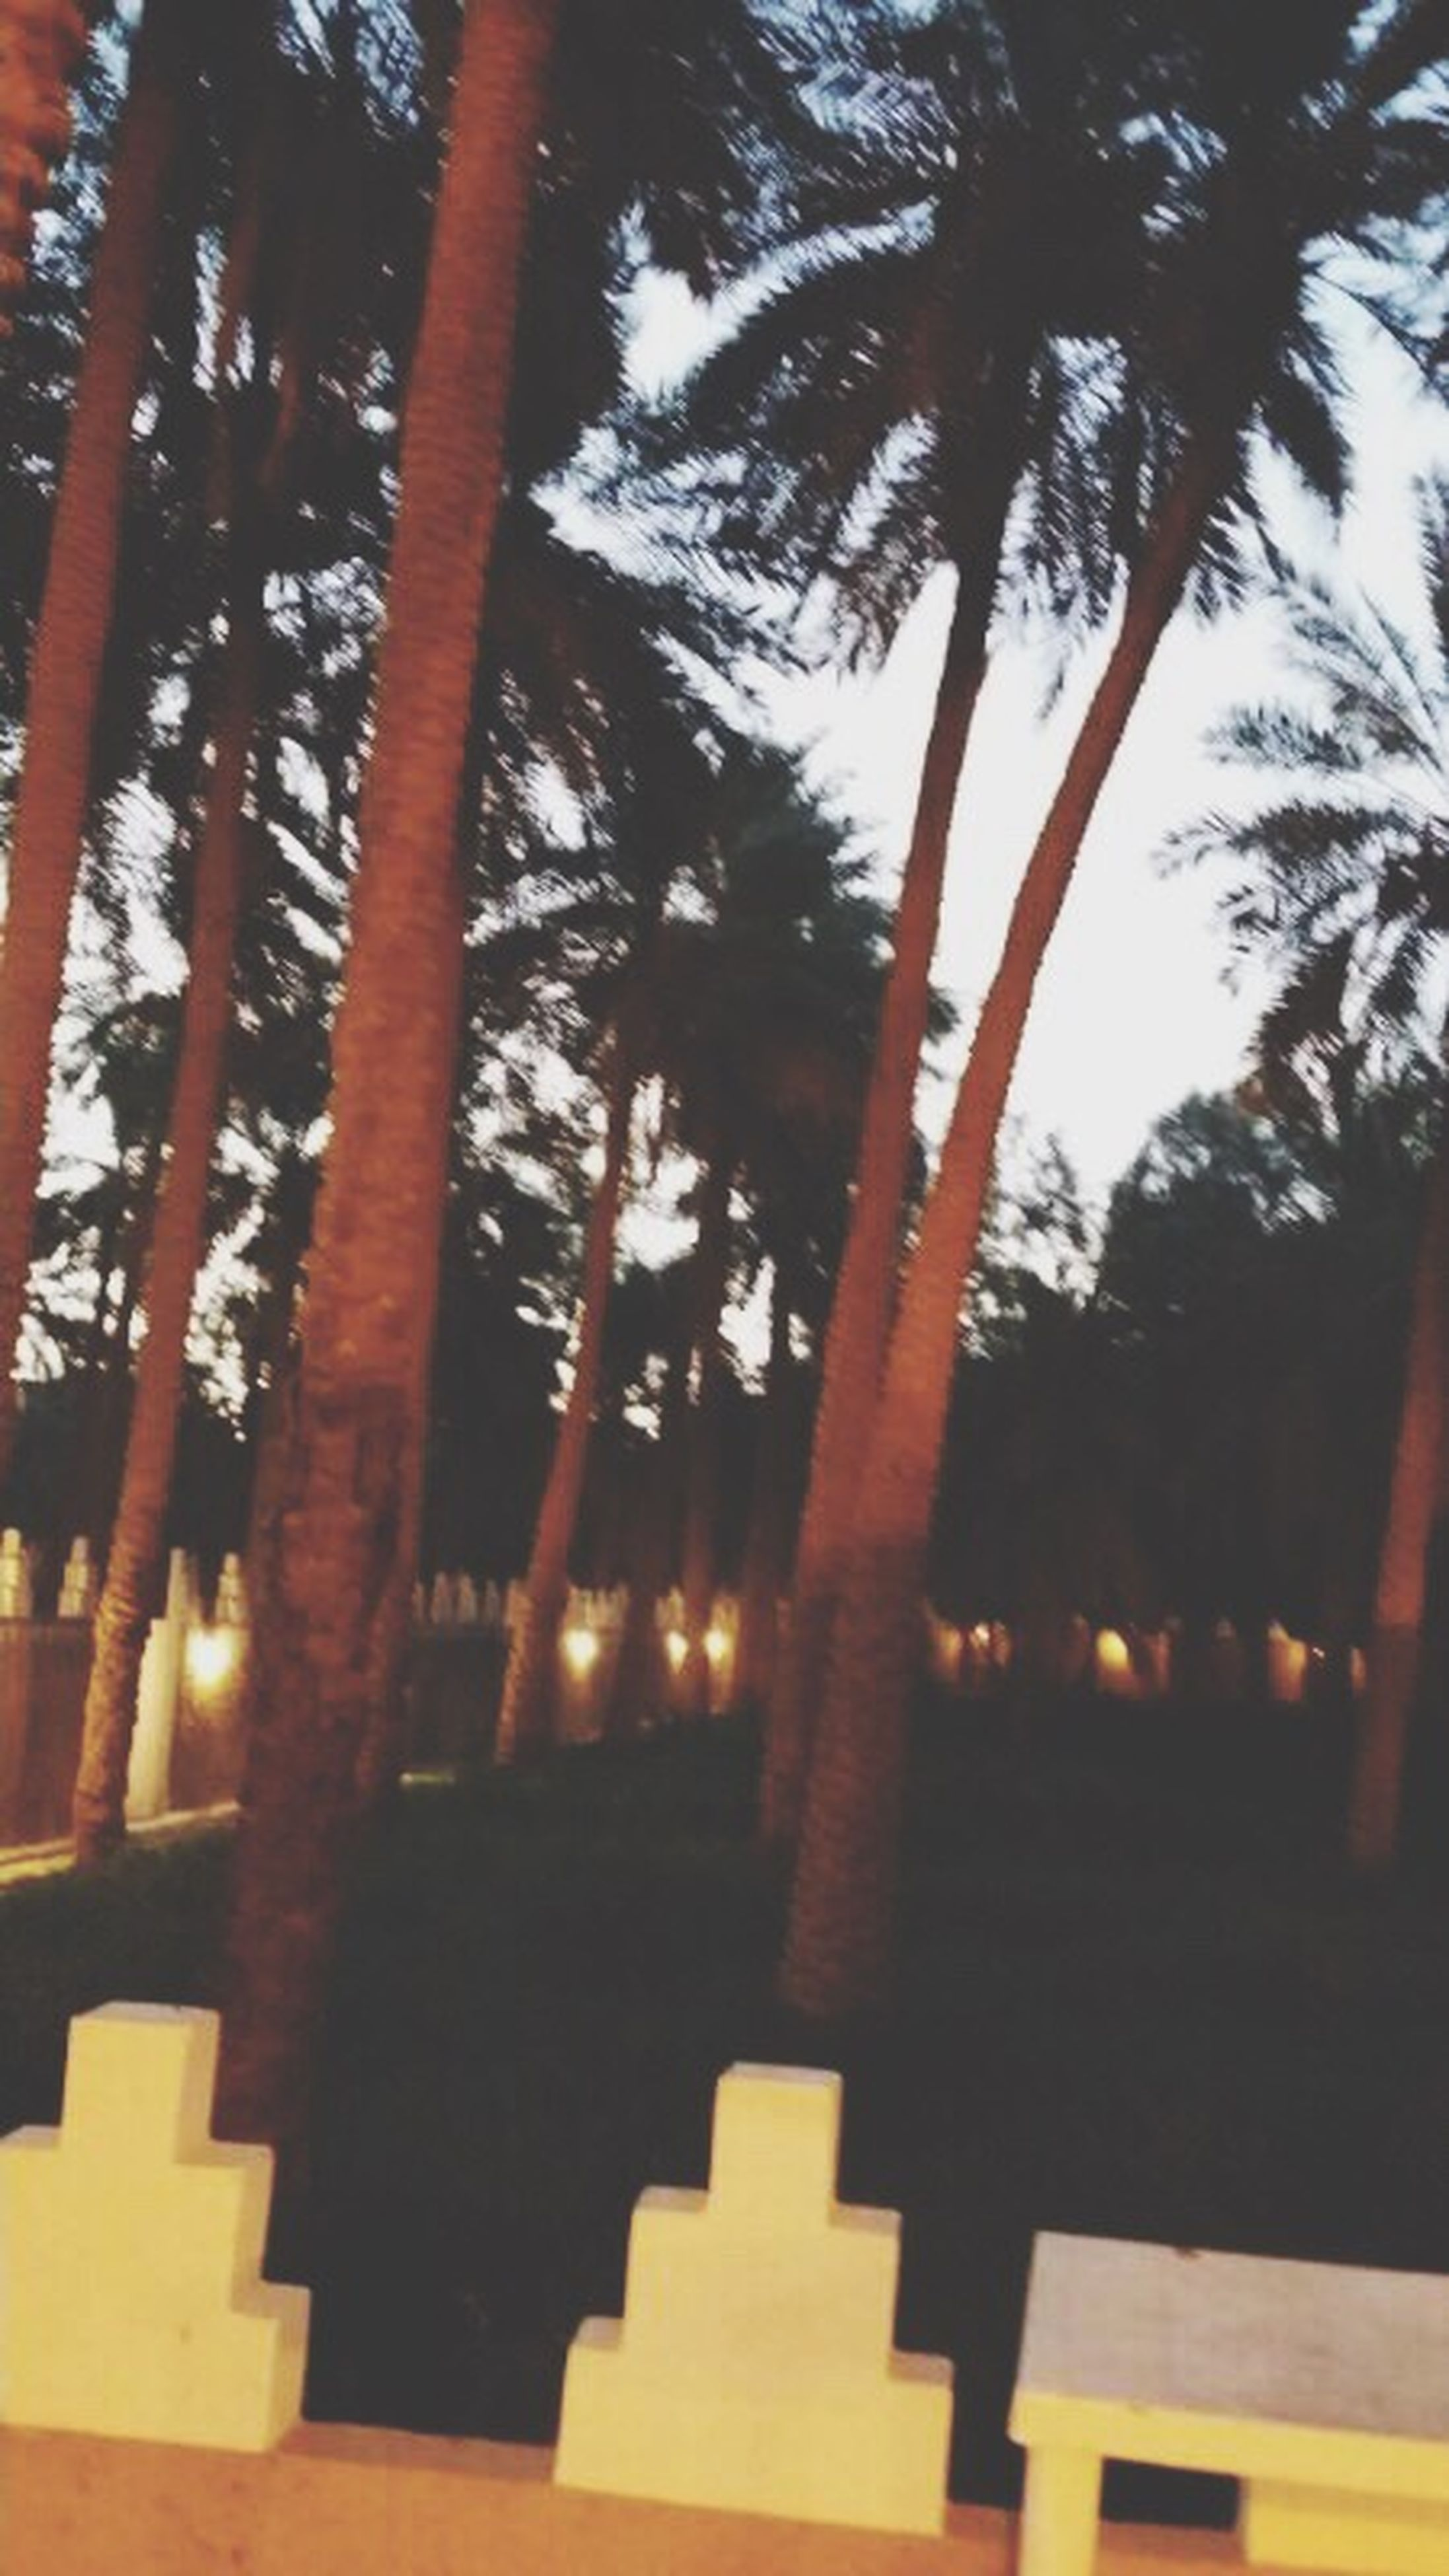 tree, low angle view, sunlight, palm tree, growth, built structure, tree trunk, silhouette, architecture, shadow, branch, no people, nature, illuminated, sky, tranquility, wood - material, outdoors, sunset, day